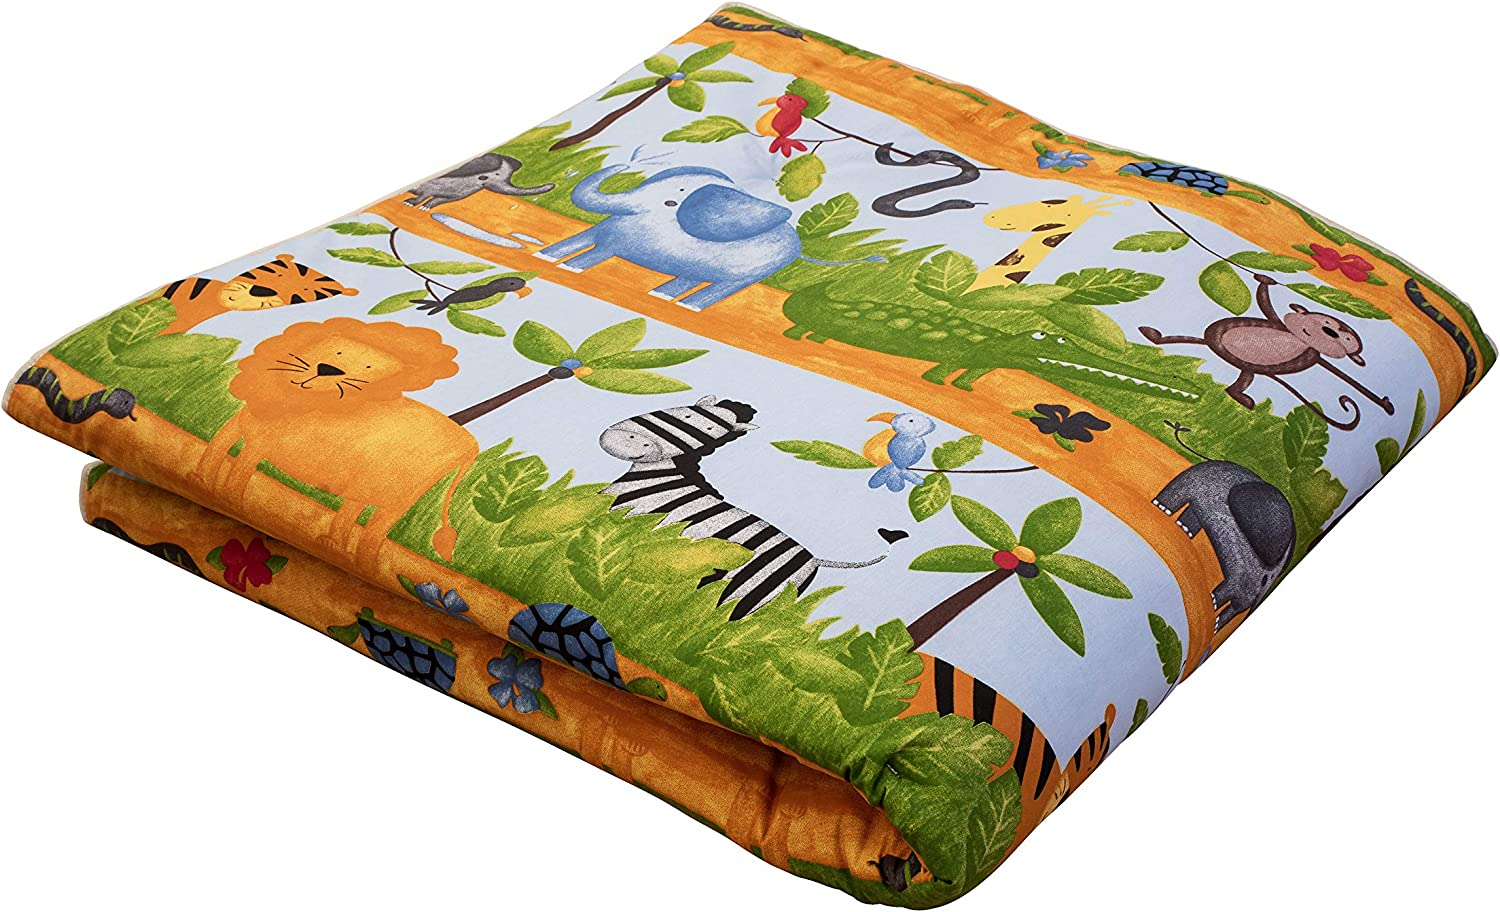 Ideenreich 20083 Crawling and Playing Blanket   King Size   135 x 190 cm   with Jungle Animals Motif